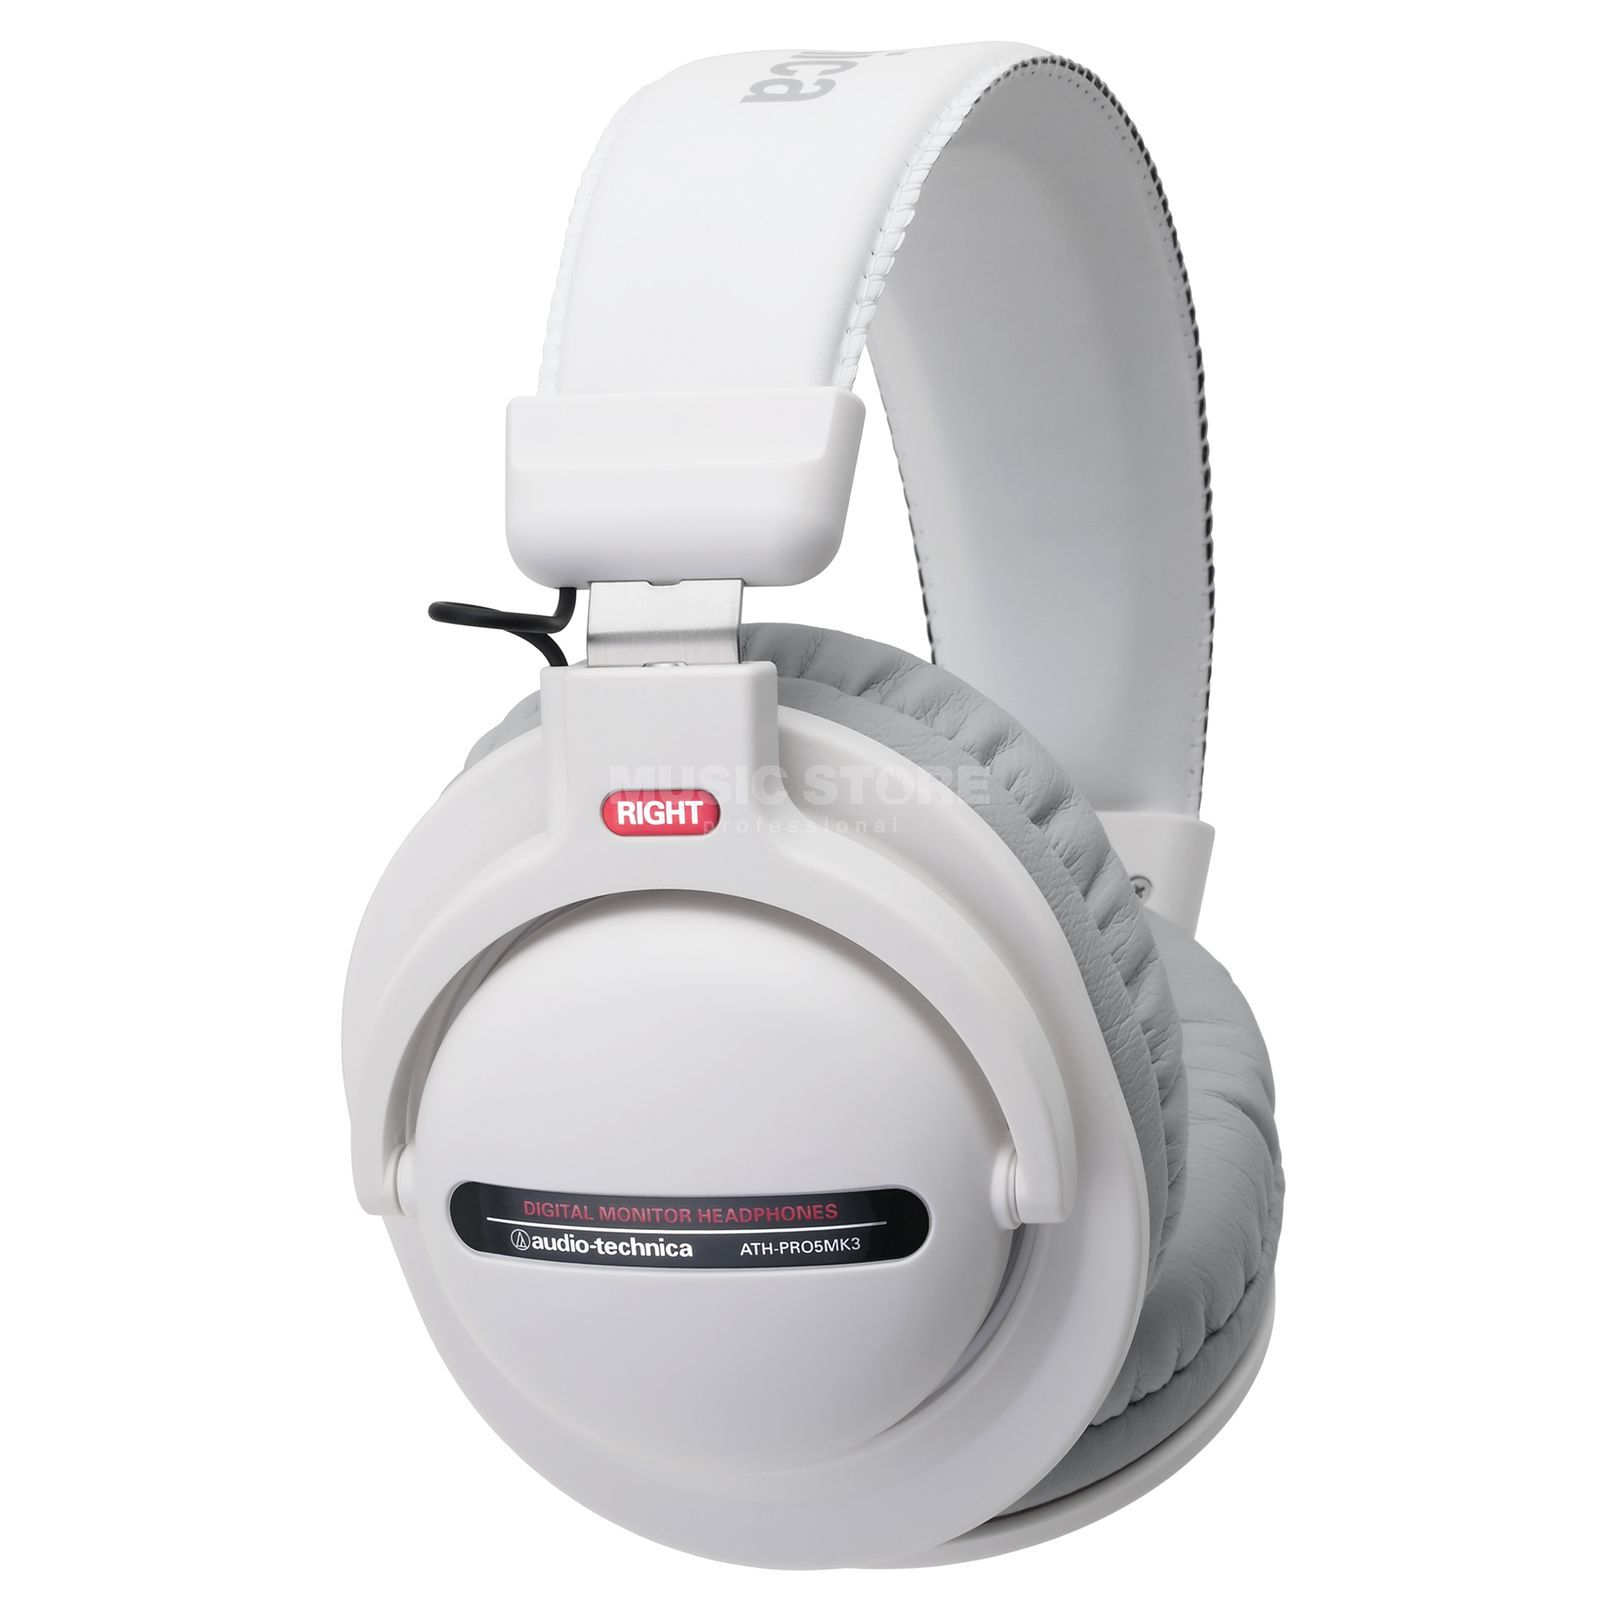 Audio-Technica ATH-Pro5 MK3 WH DJ Headphones, white Product Image